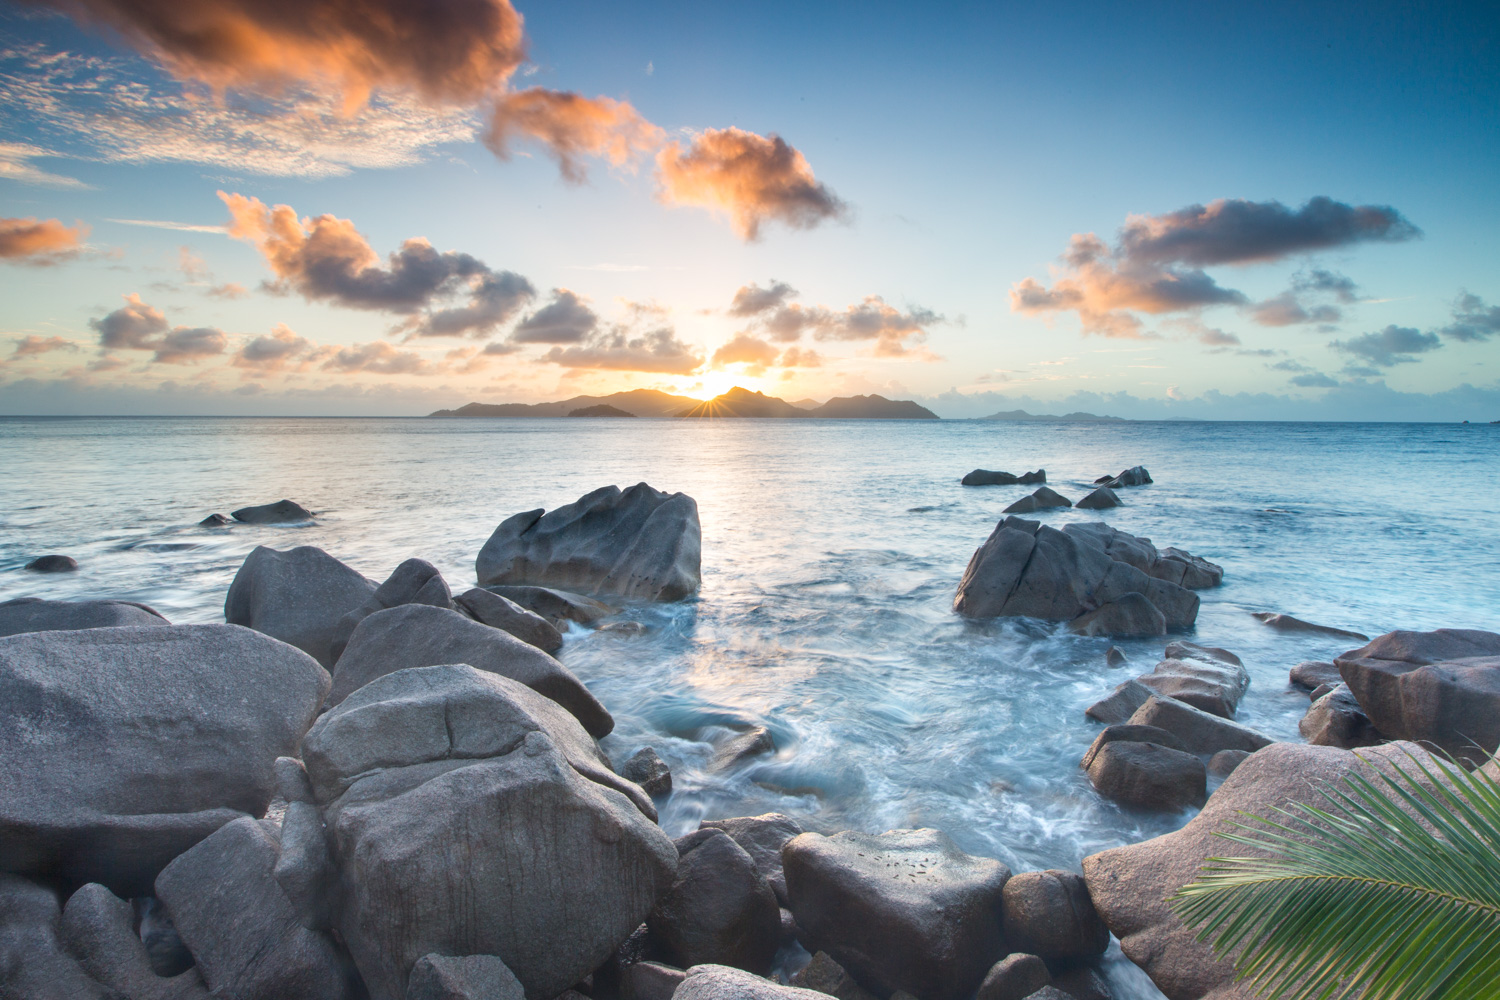 Seascape rocky shore sunset - Here are some practical steps to take and mistakes you want to avoid to help you capture better seascape images.